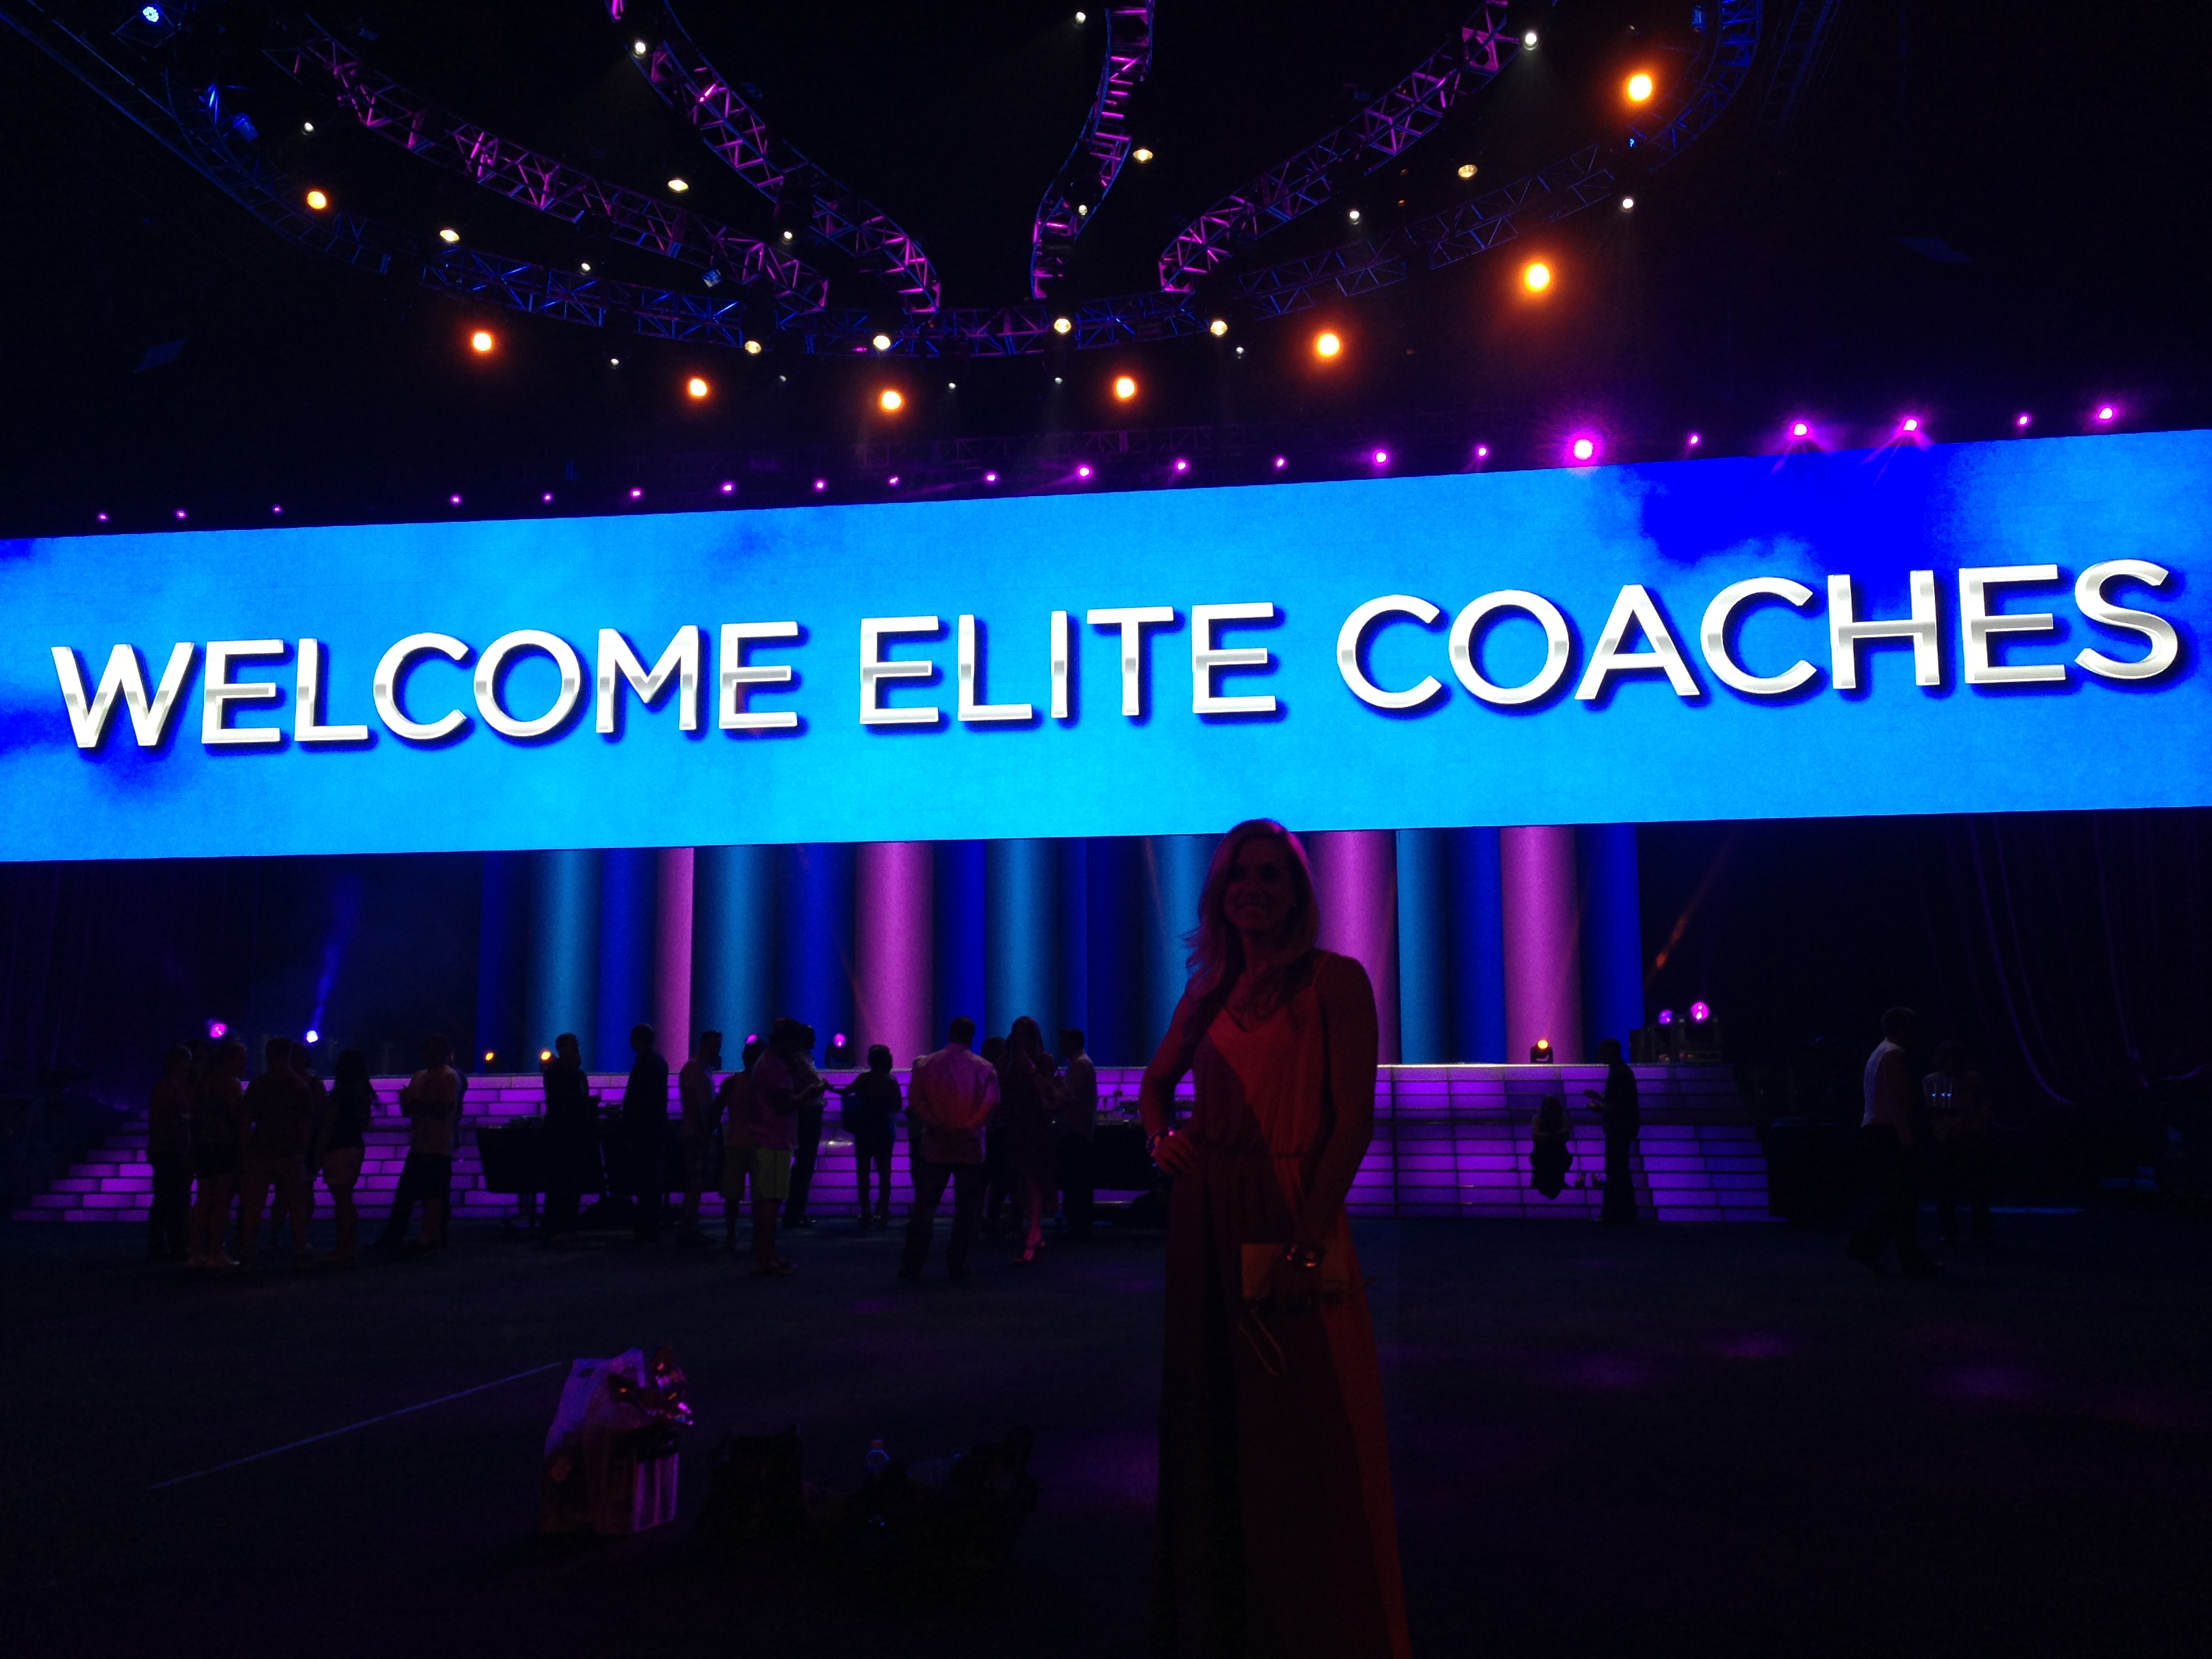 Beachbody Coach, beachbody summit, elite coach, top coach, coach training, coach summit, beachbody success